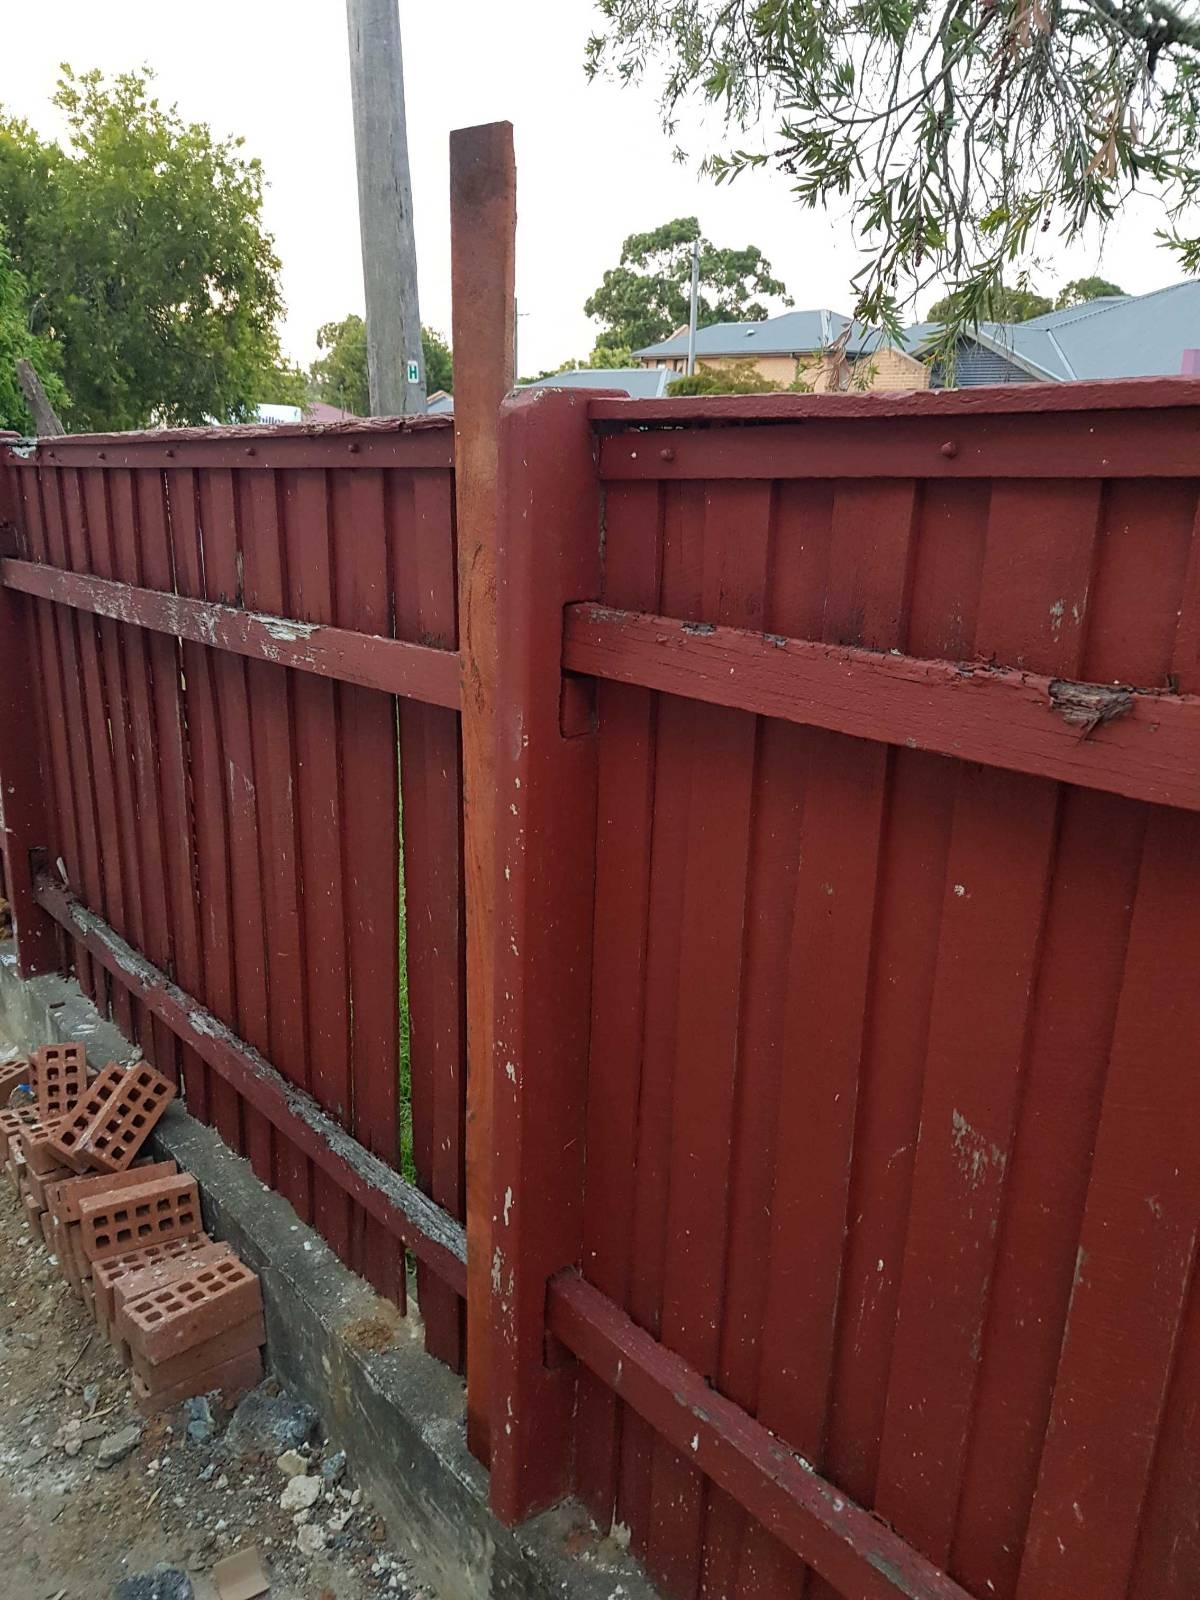 Timber fence but short concrete posts (see pic)